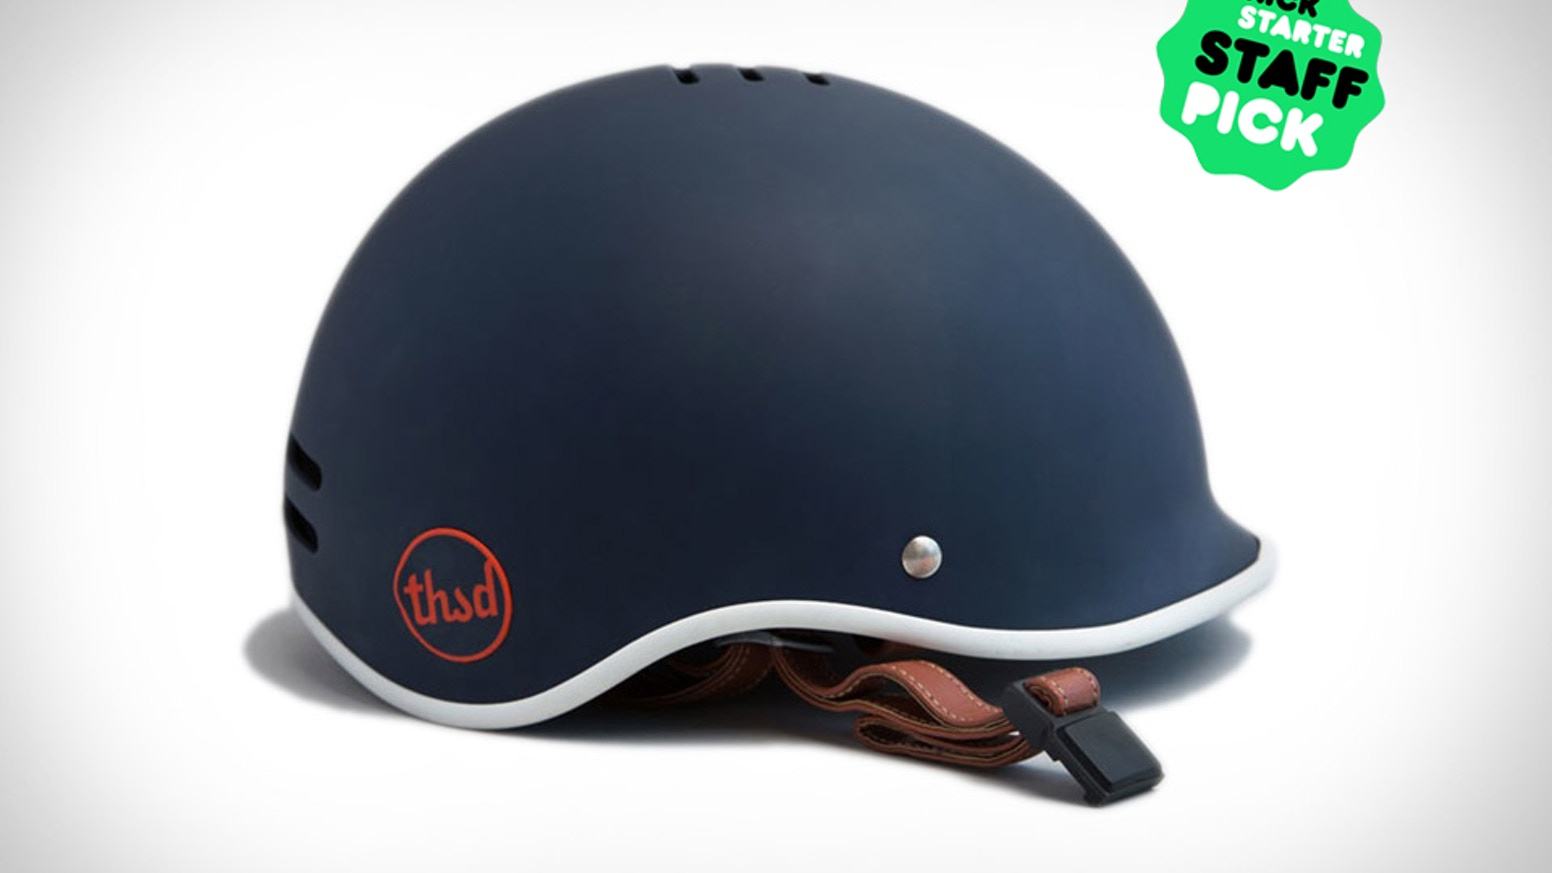 Thousand Finally A Bike Helmet You D Actually Want To Wear By